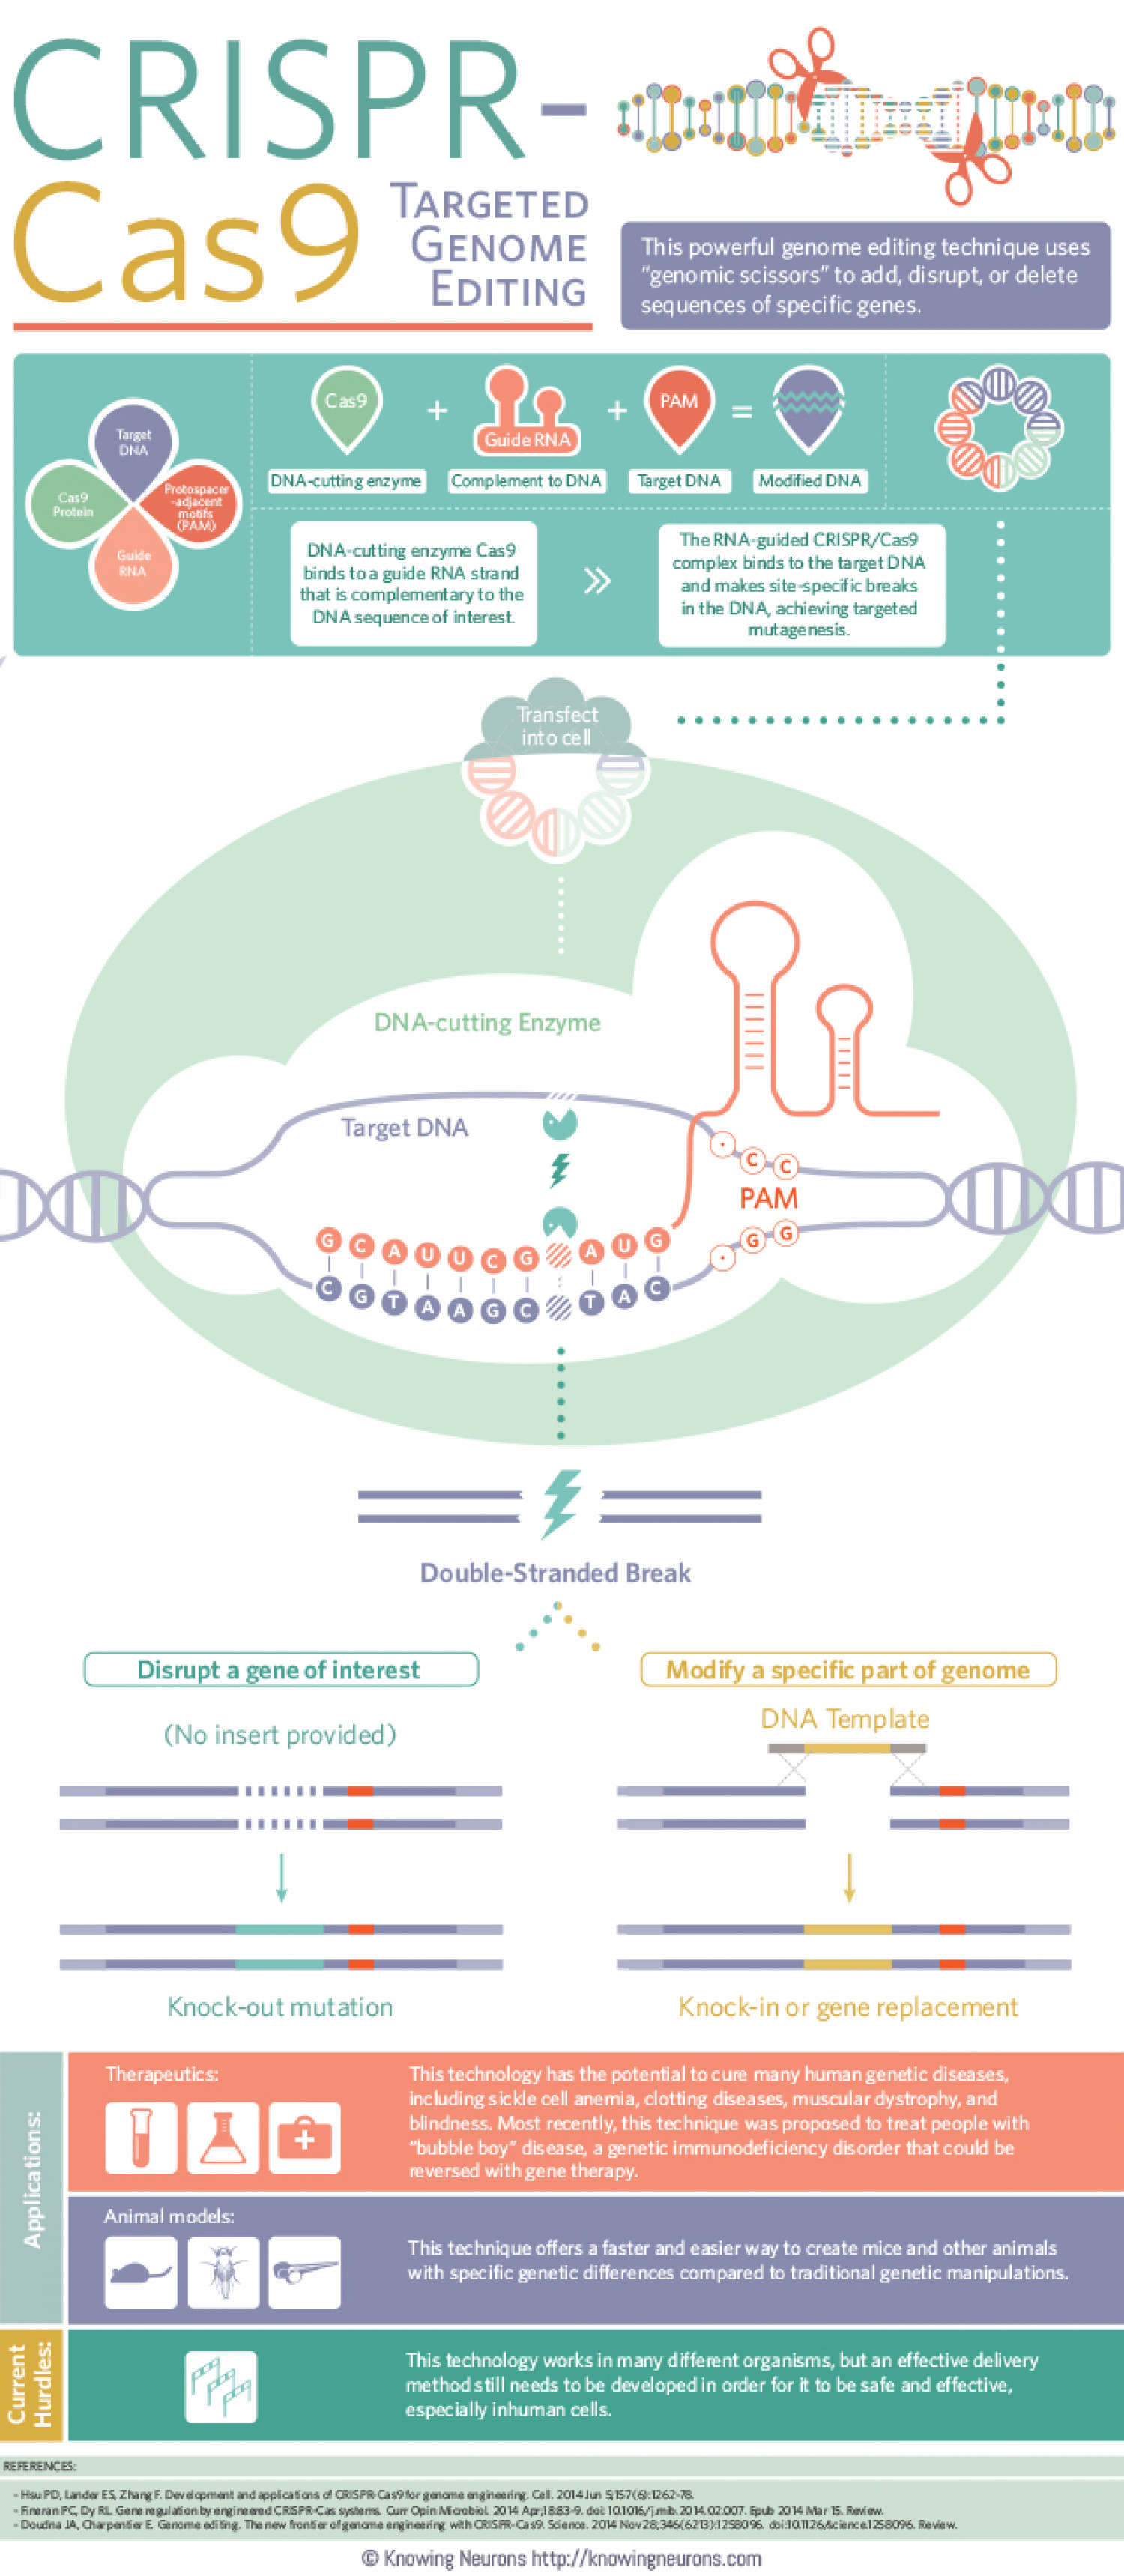 CRISPR-Cas9: Targeted Genome Editing Infographic